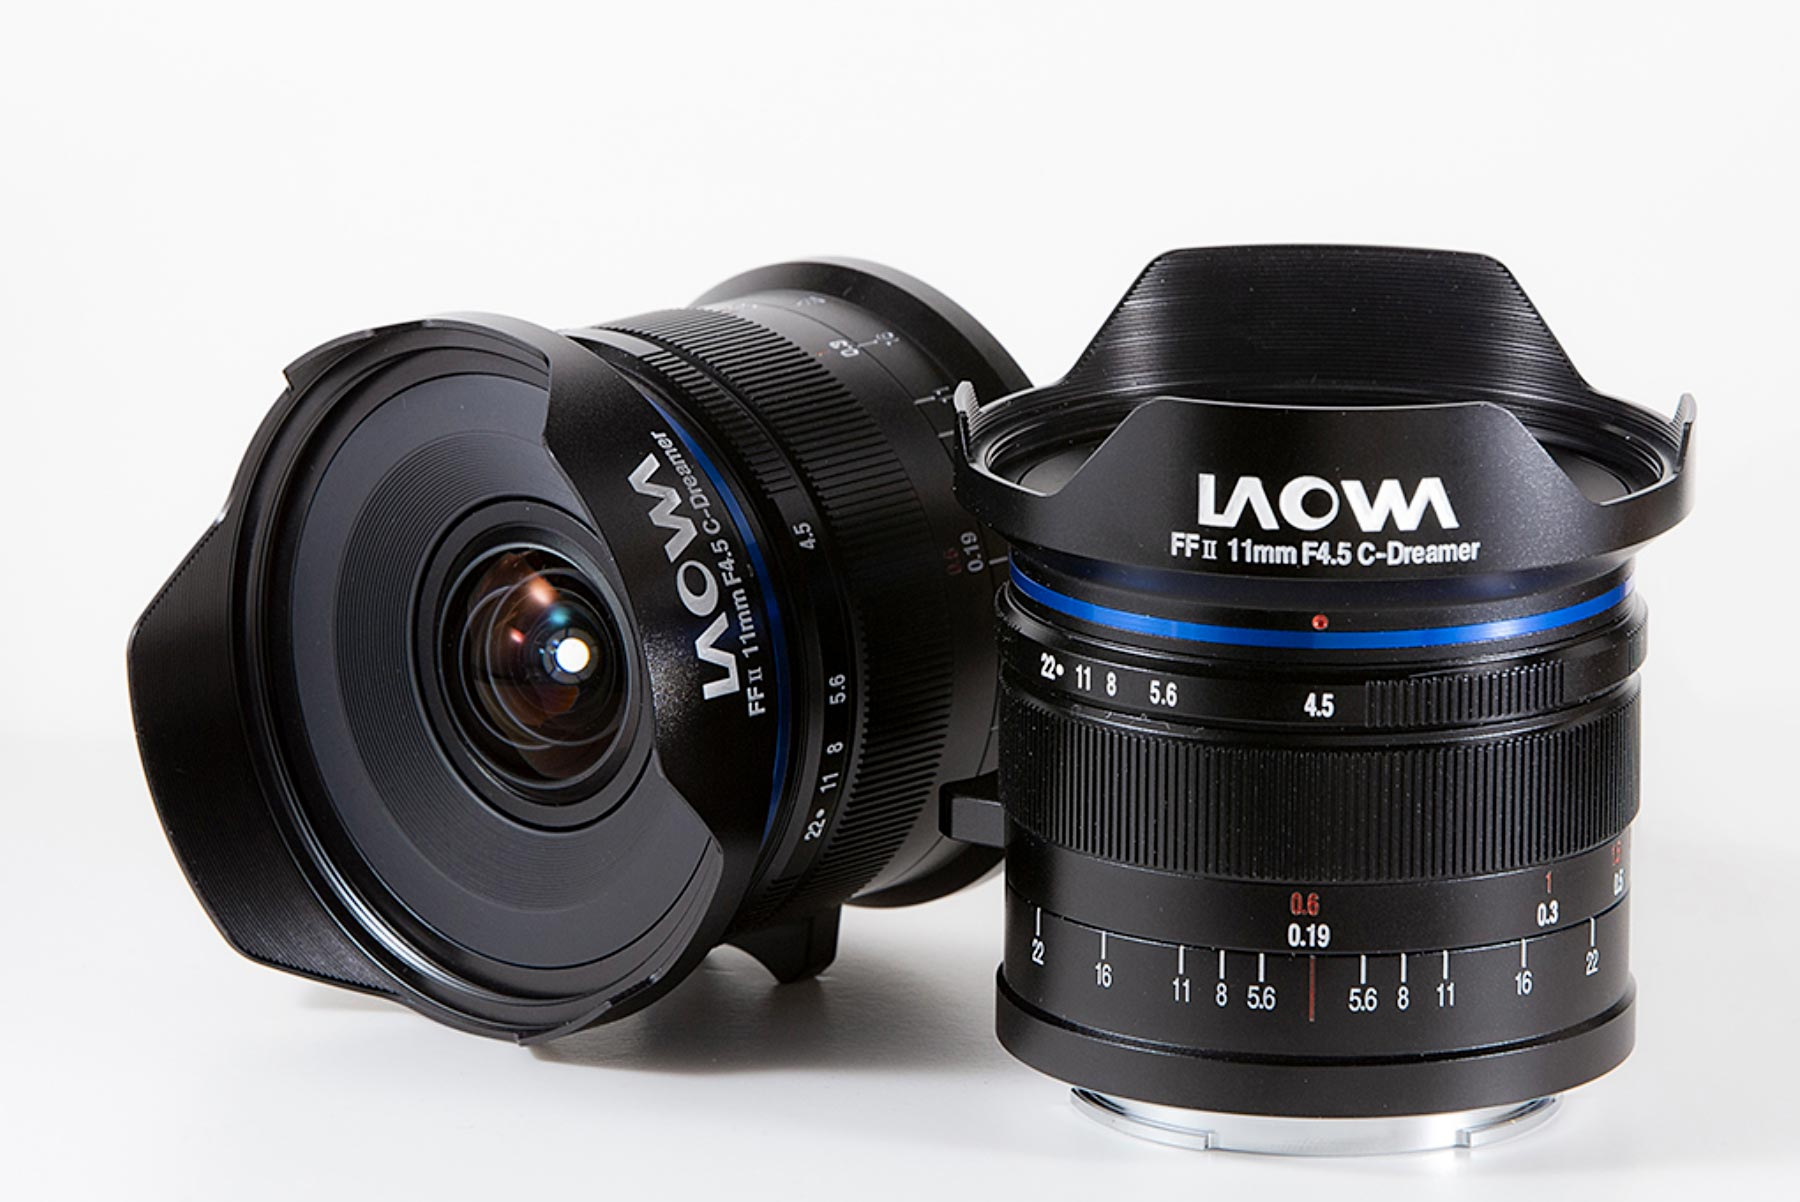 Laowa 11mm f/4.5 FF RL: a new rectilinear lens for mirrorless cameras